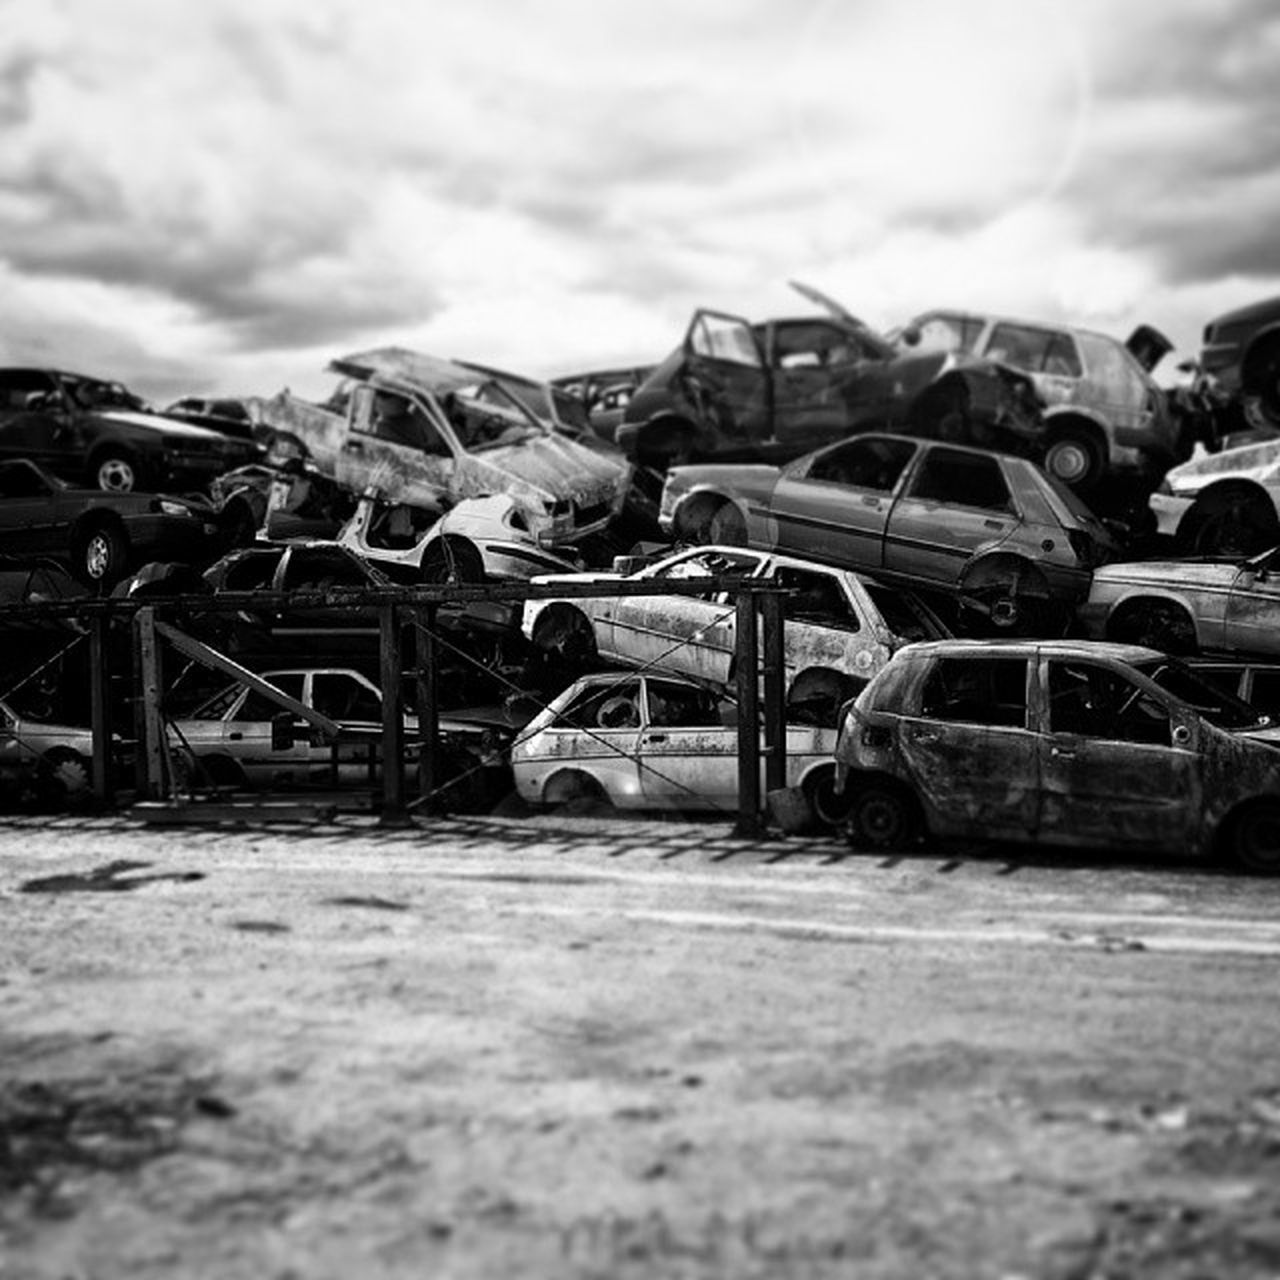 sky, transportation, selective focus, surface level, metal, focus on foreground, cloud - sky, outdoors, day, mode of transport, mountain, no people, in a row, close-up, cloud, road, abandoned, rusty, old, sunlight